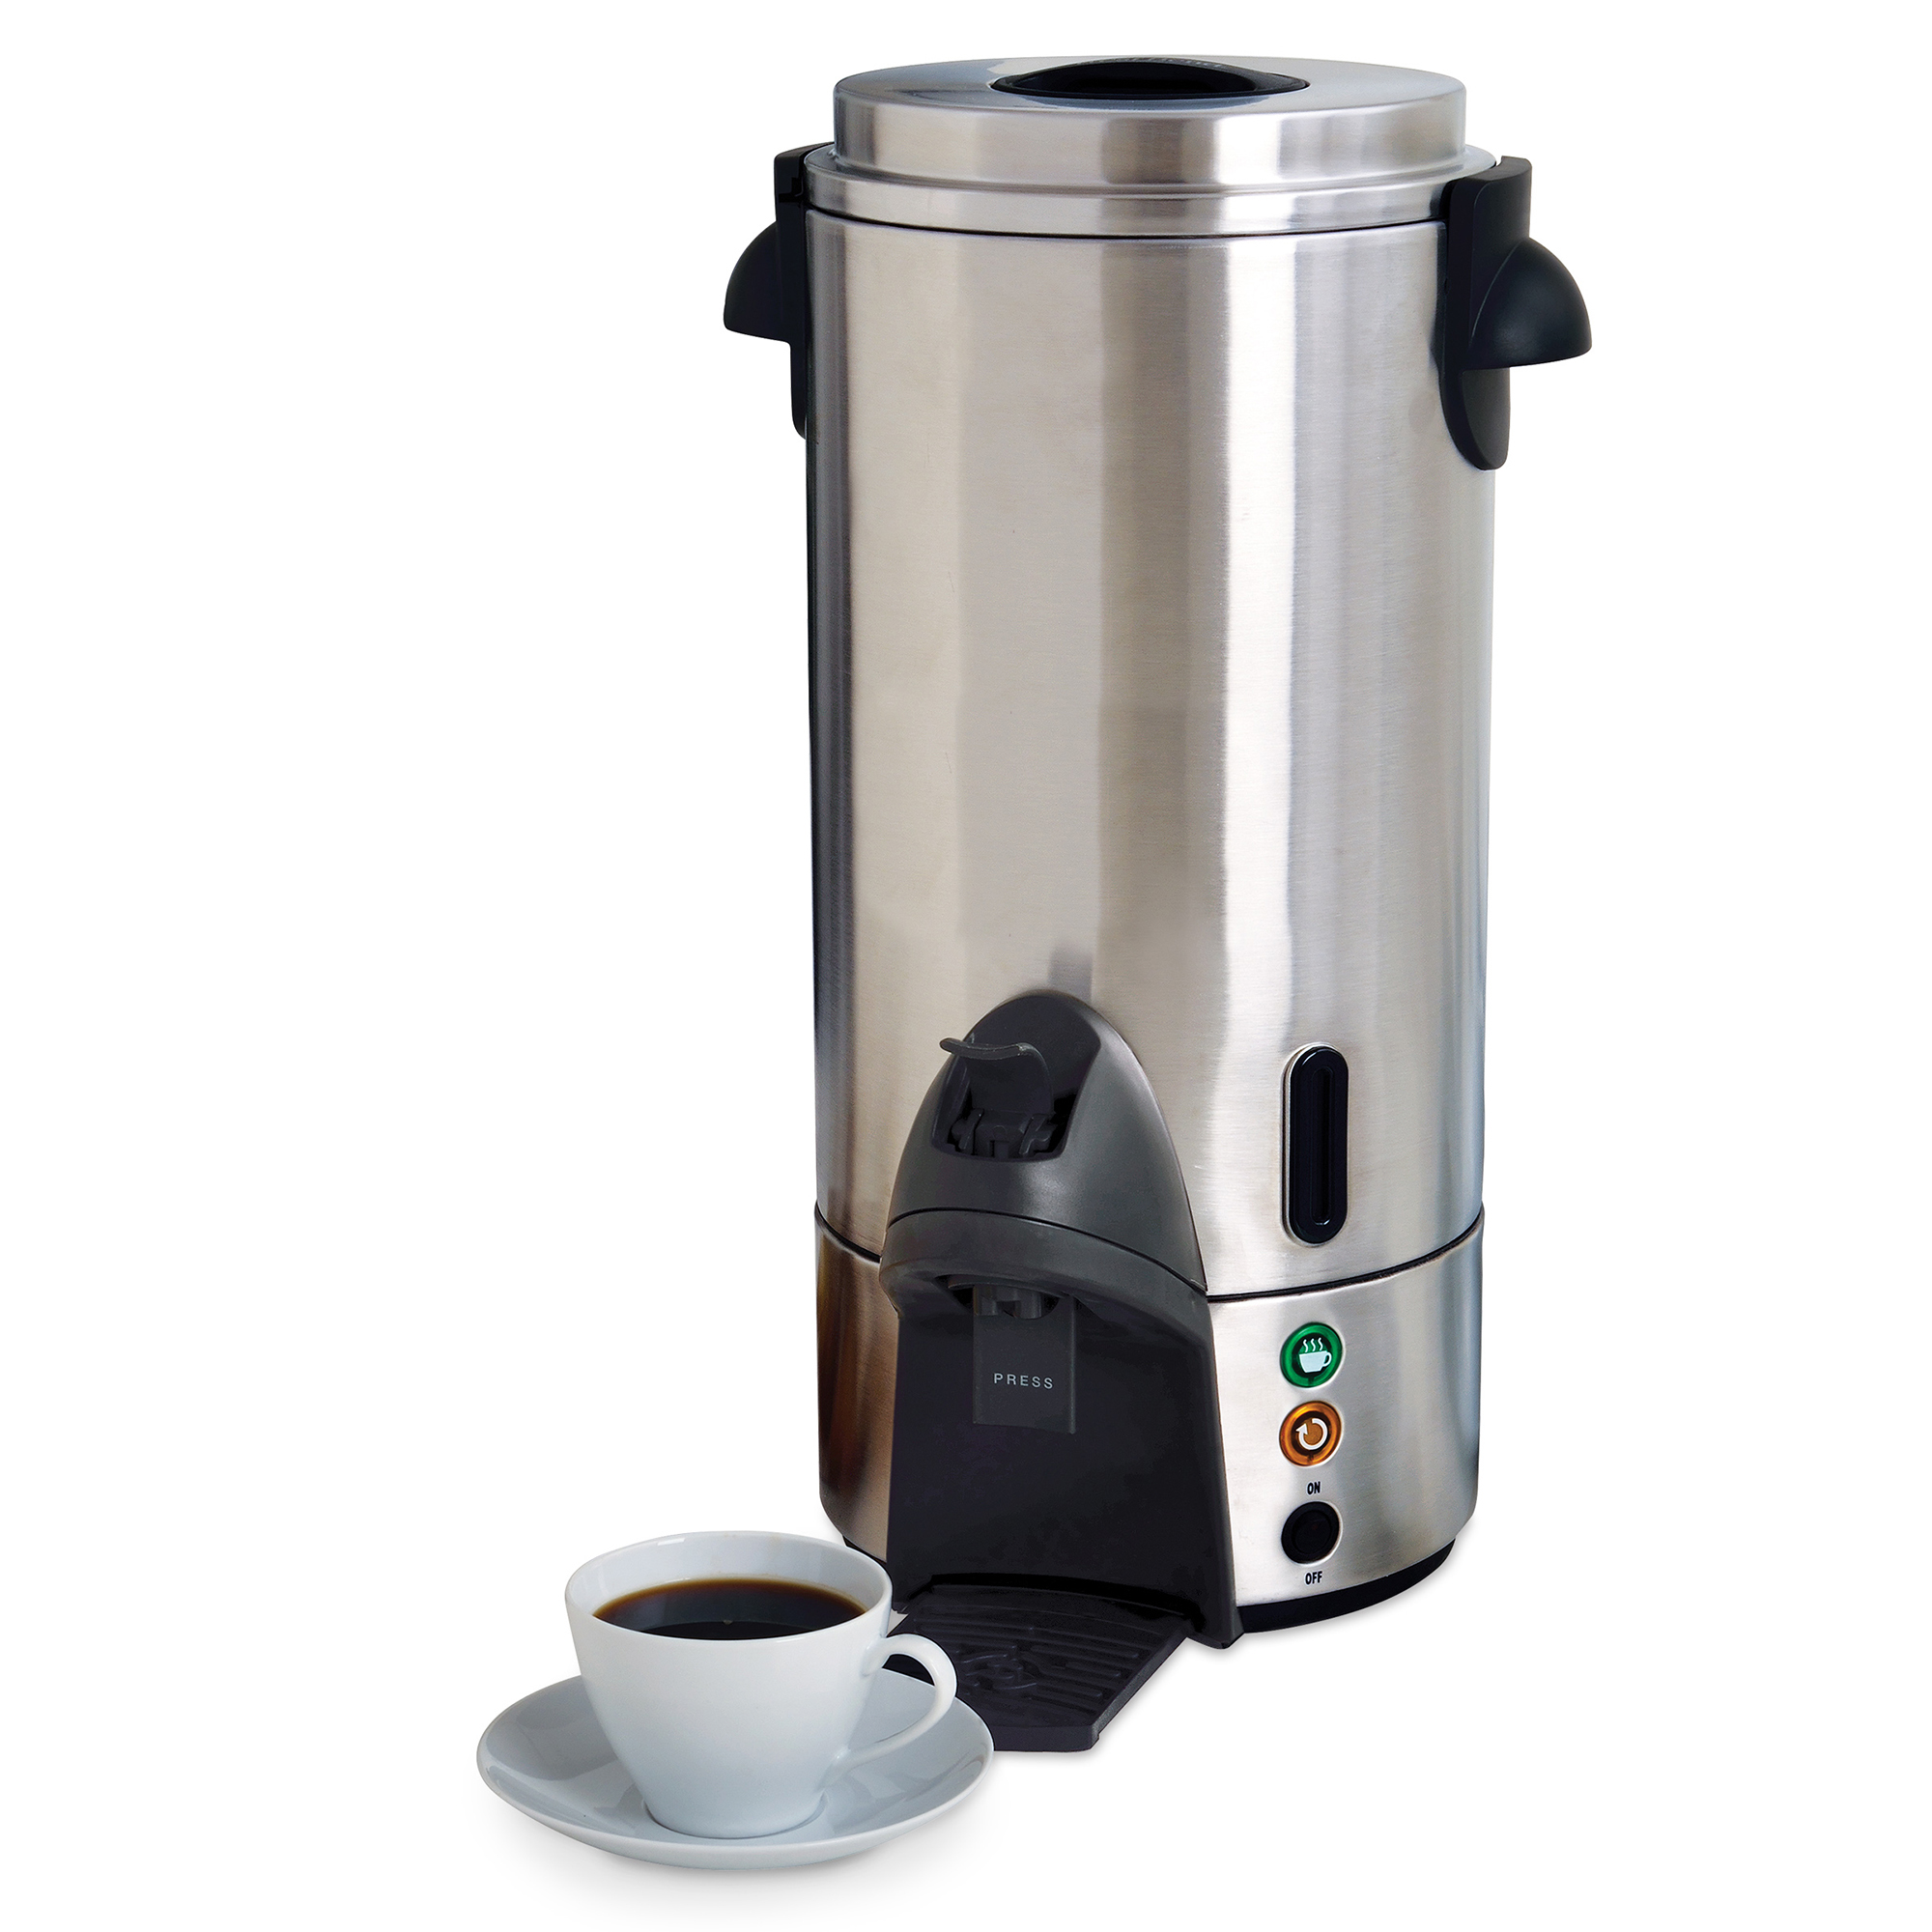 West Bend 54100 100-Cup Commercial Coffee Maker, Stainless Steel